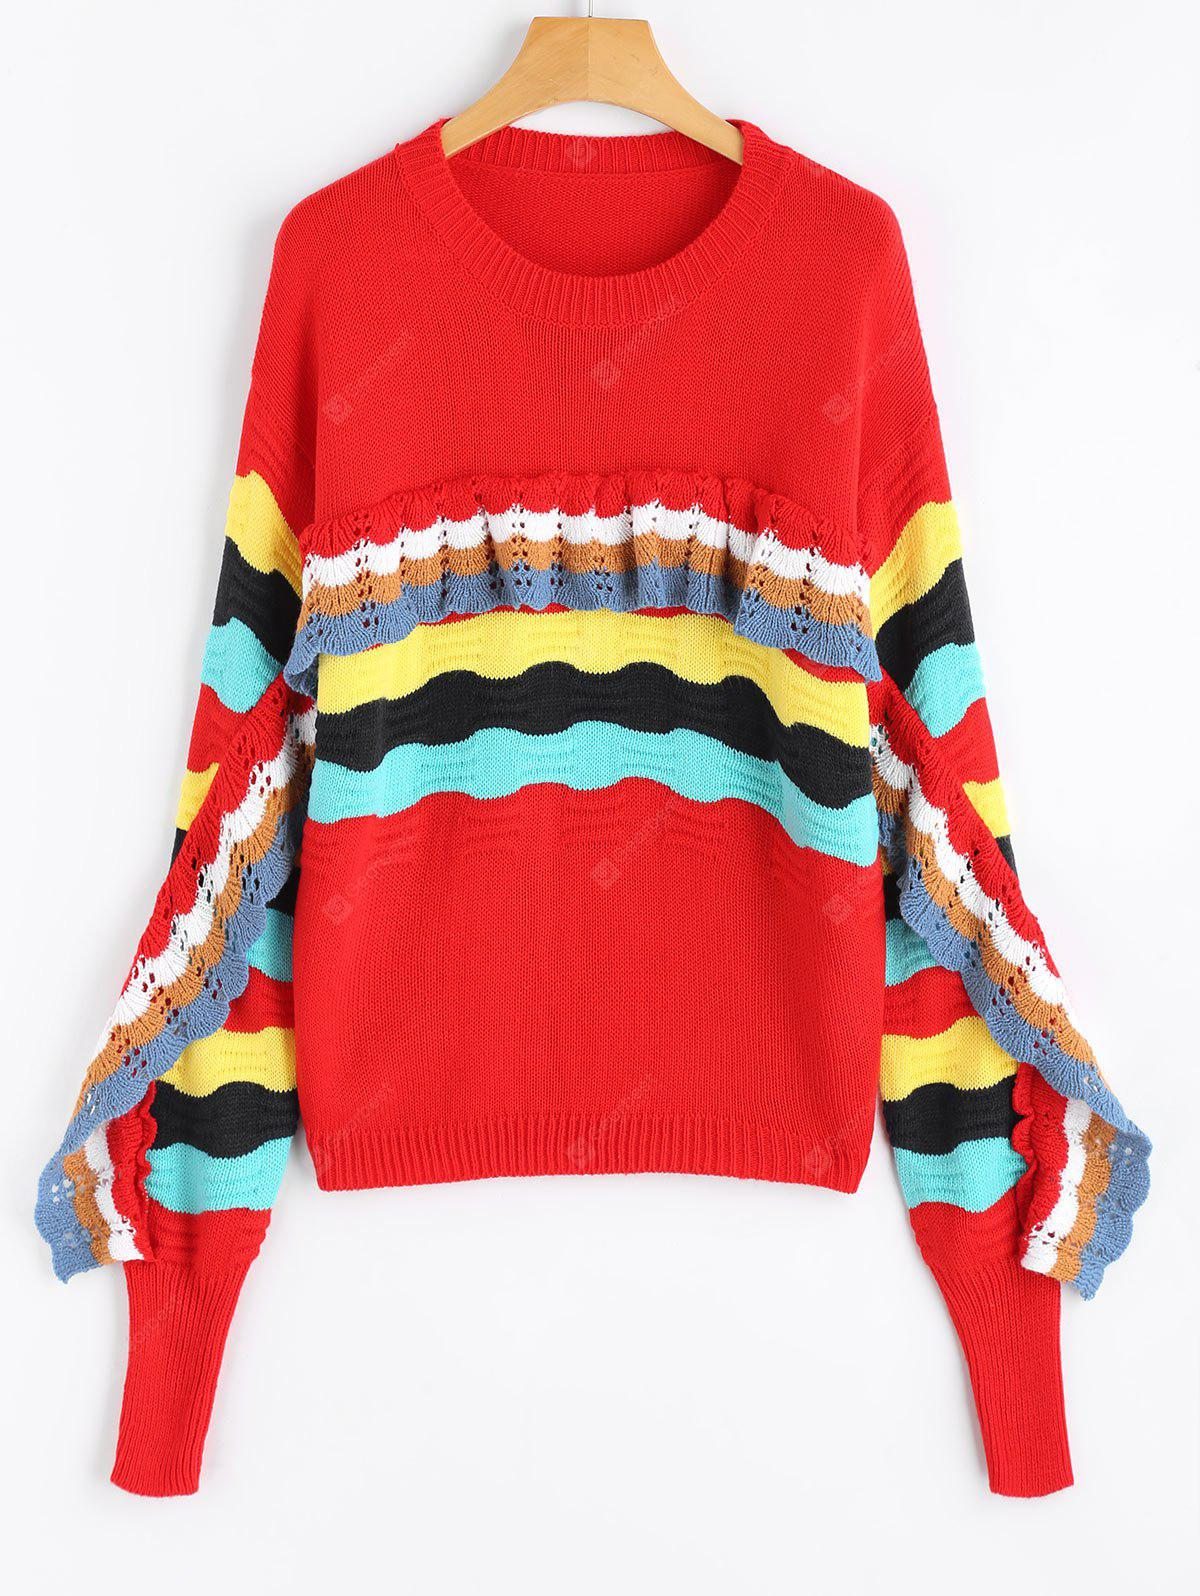 Crew Neck Frilled Color Block Sweater, RED, Apparel, Women's Clothing, Sweaters & Cardigans